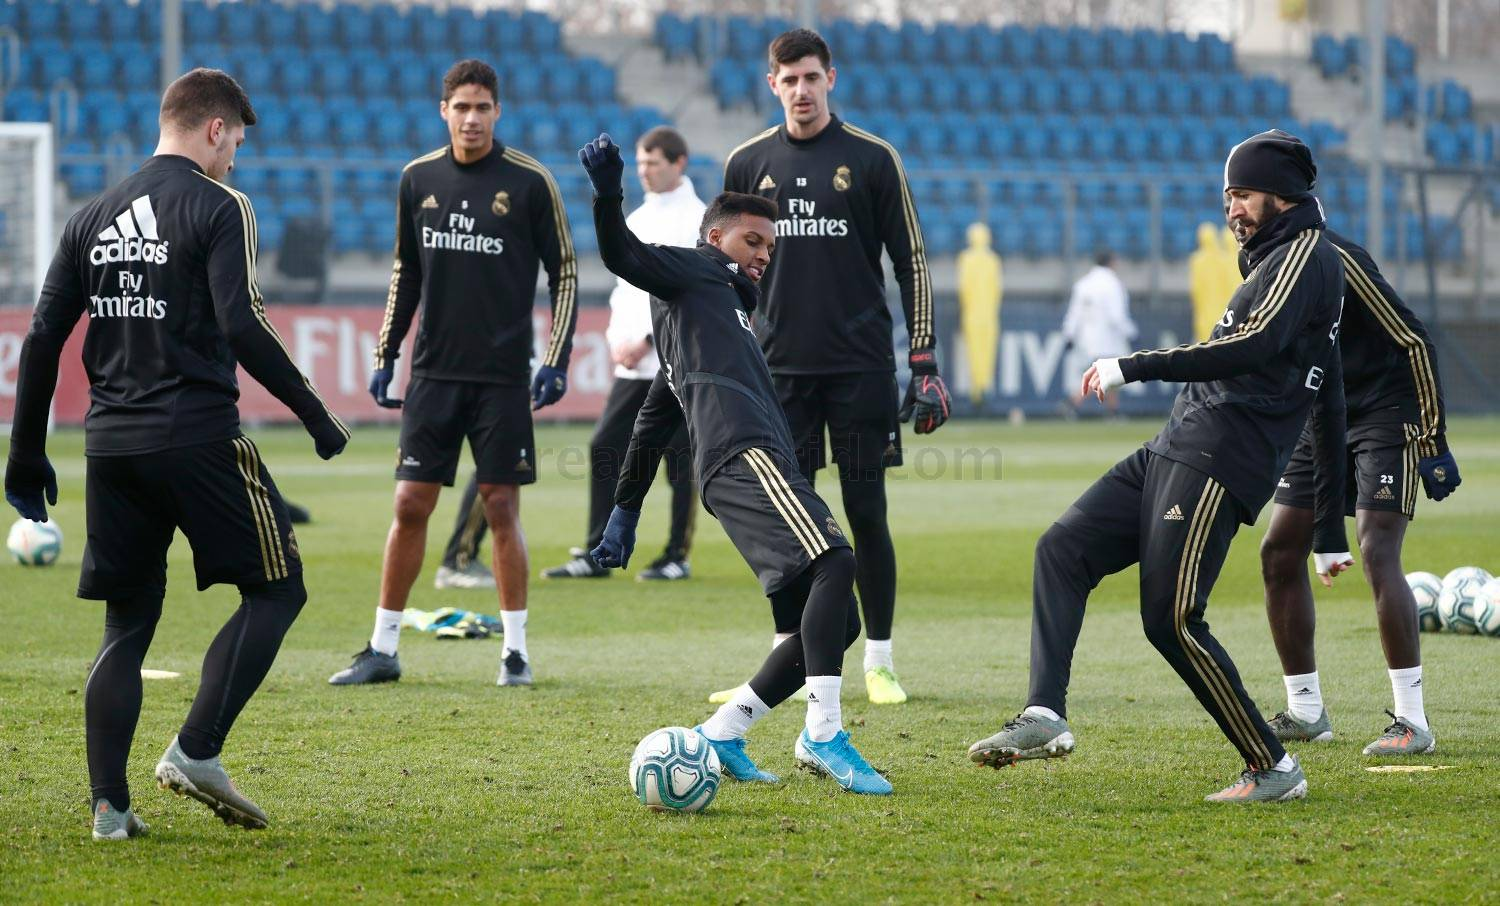 Real Madrid - Entrenamiento del Real Madrid  - 14-12-2019